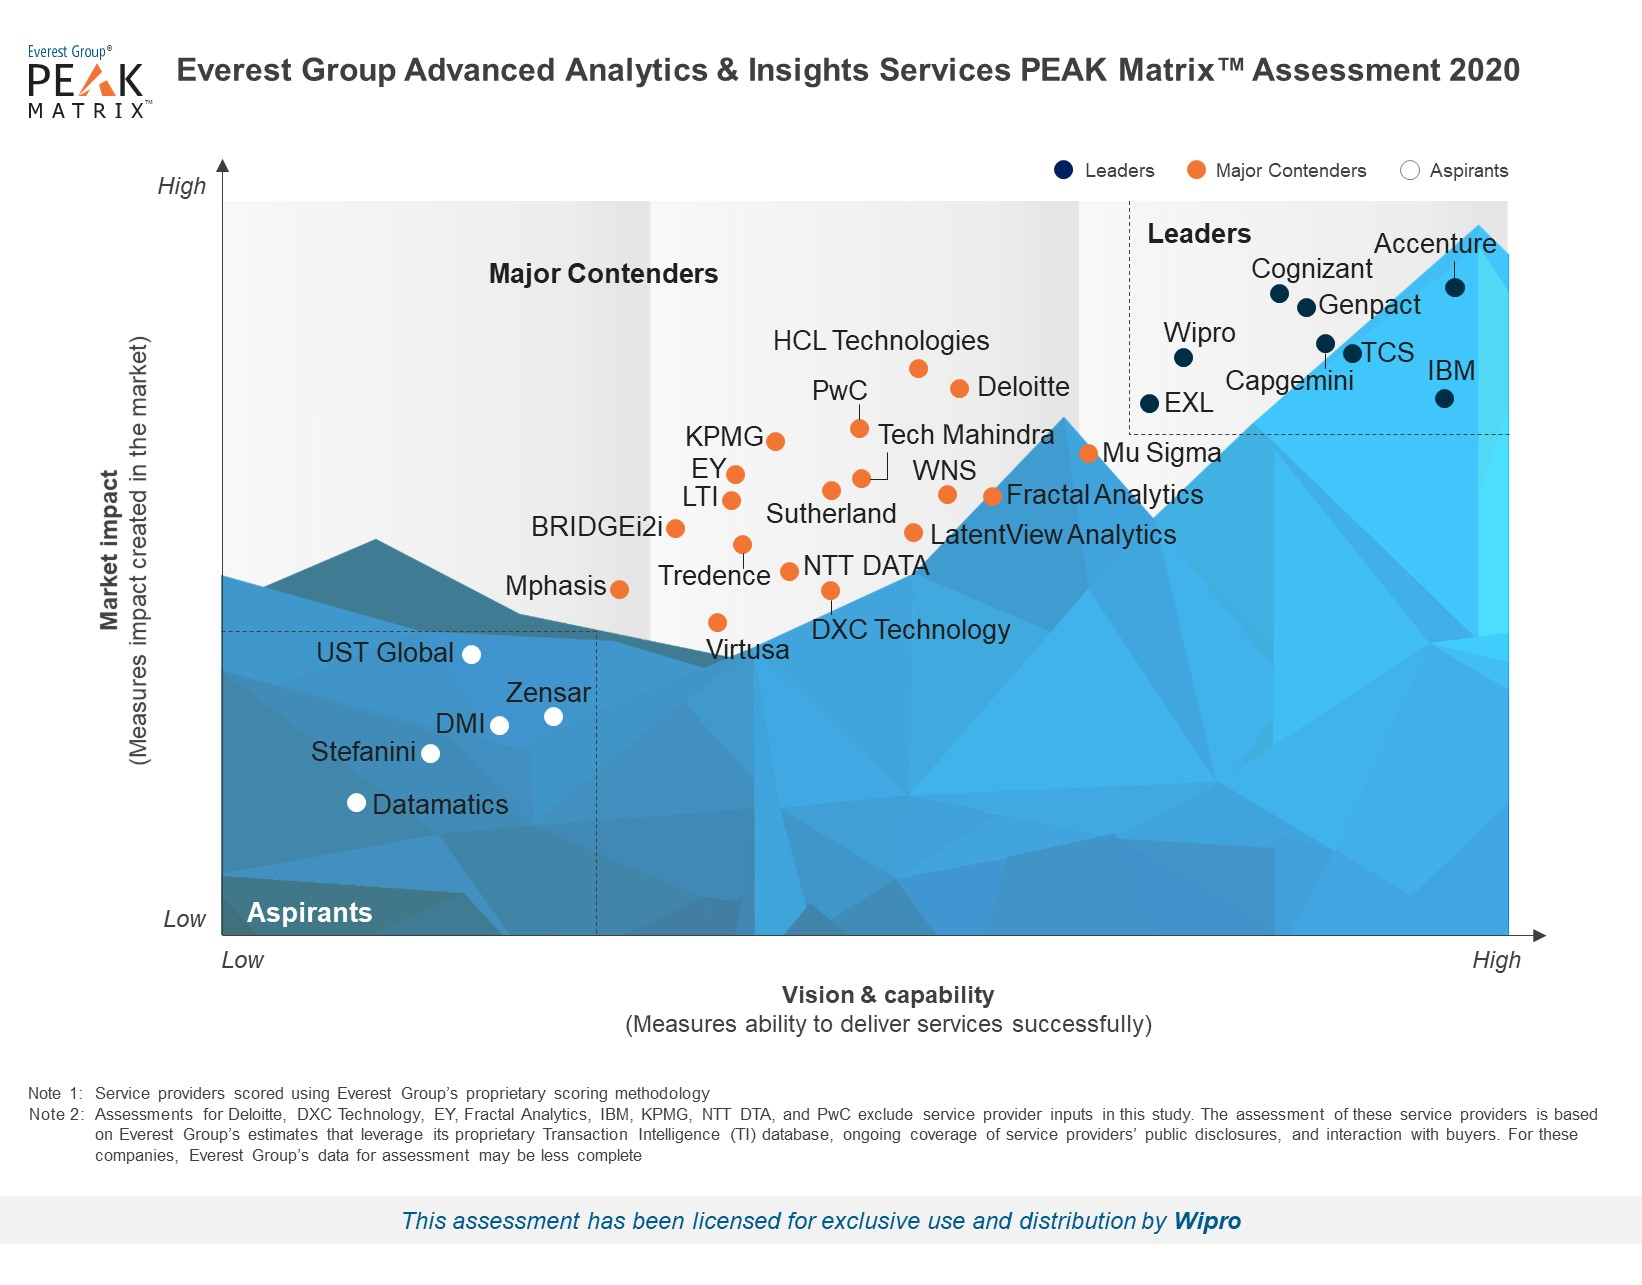 Wipro is a Leader in Advanced Analytics & Insights Services 2020